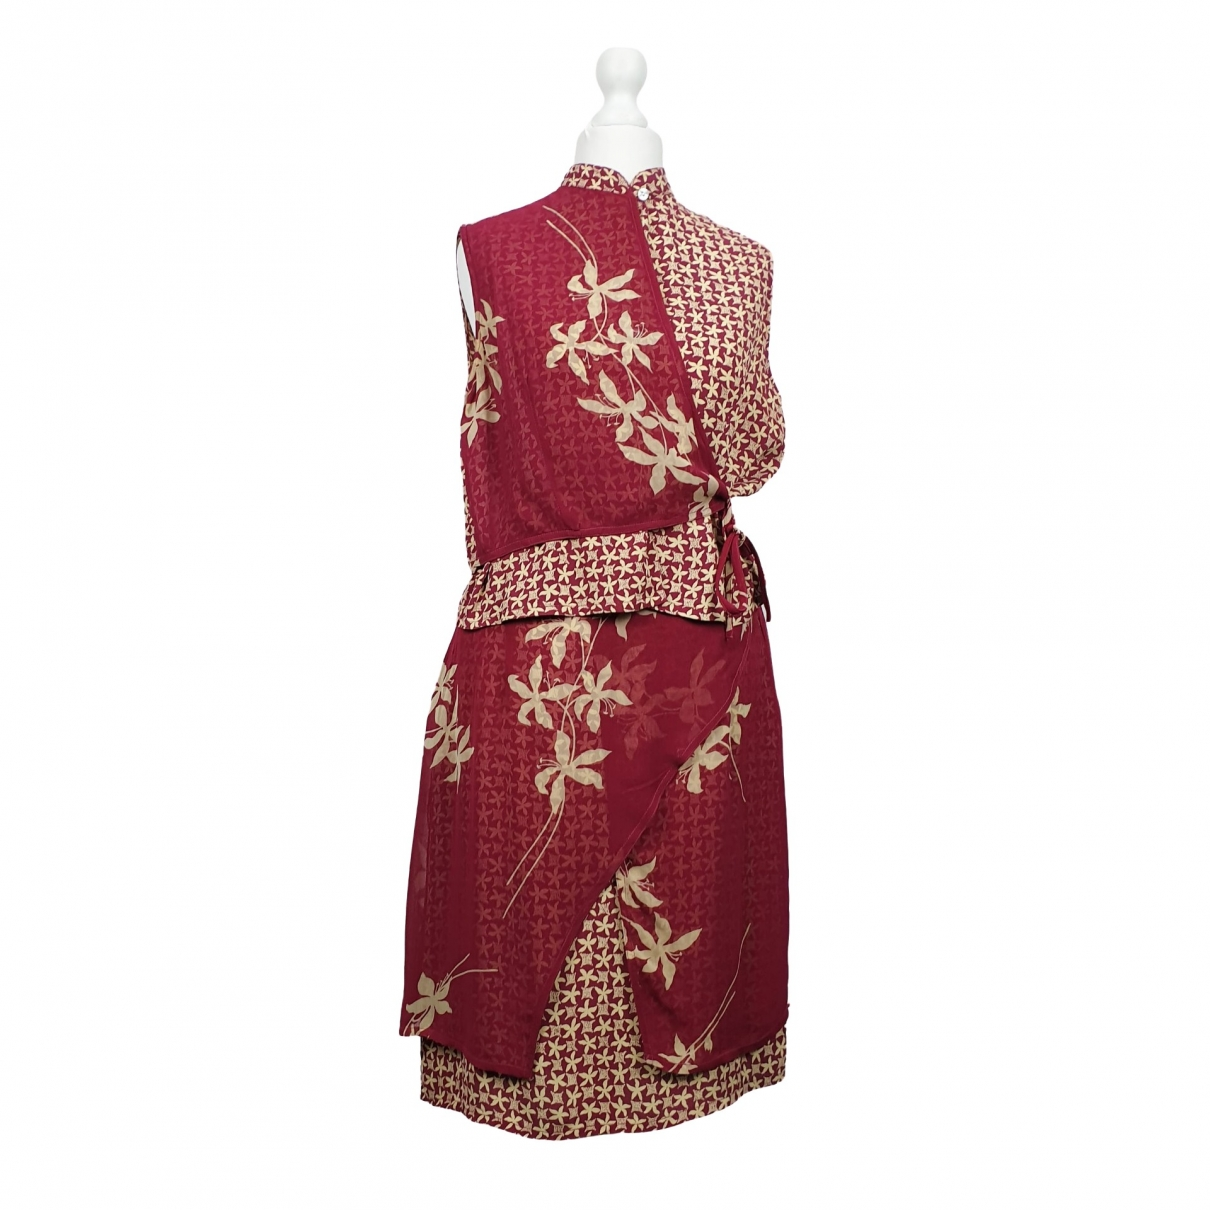 Non Signé / Unsigned \N Burgundy dress for Women 40 IT